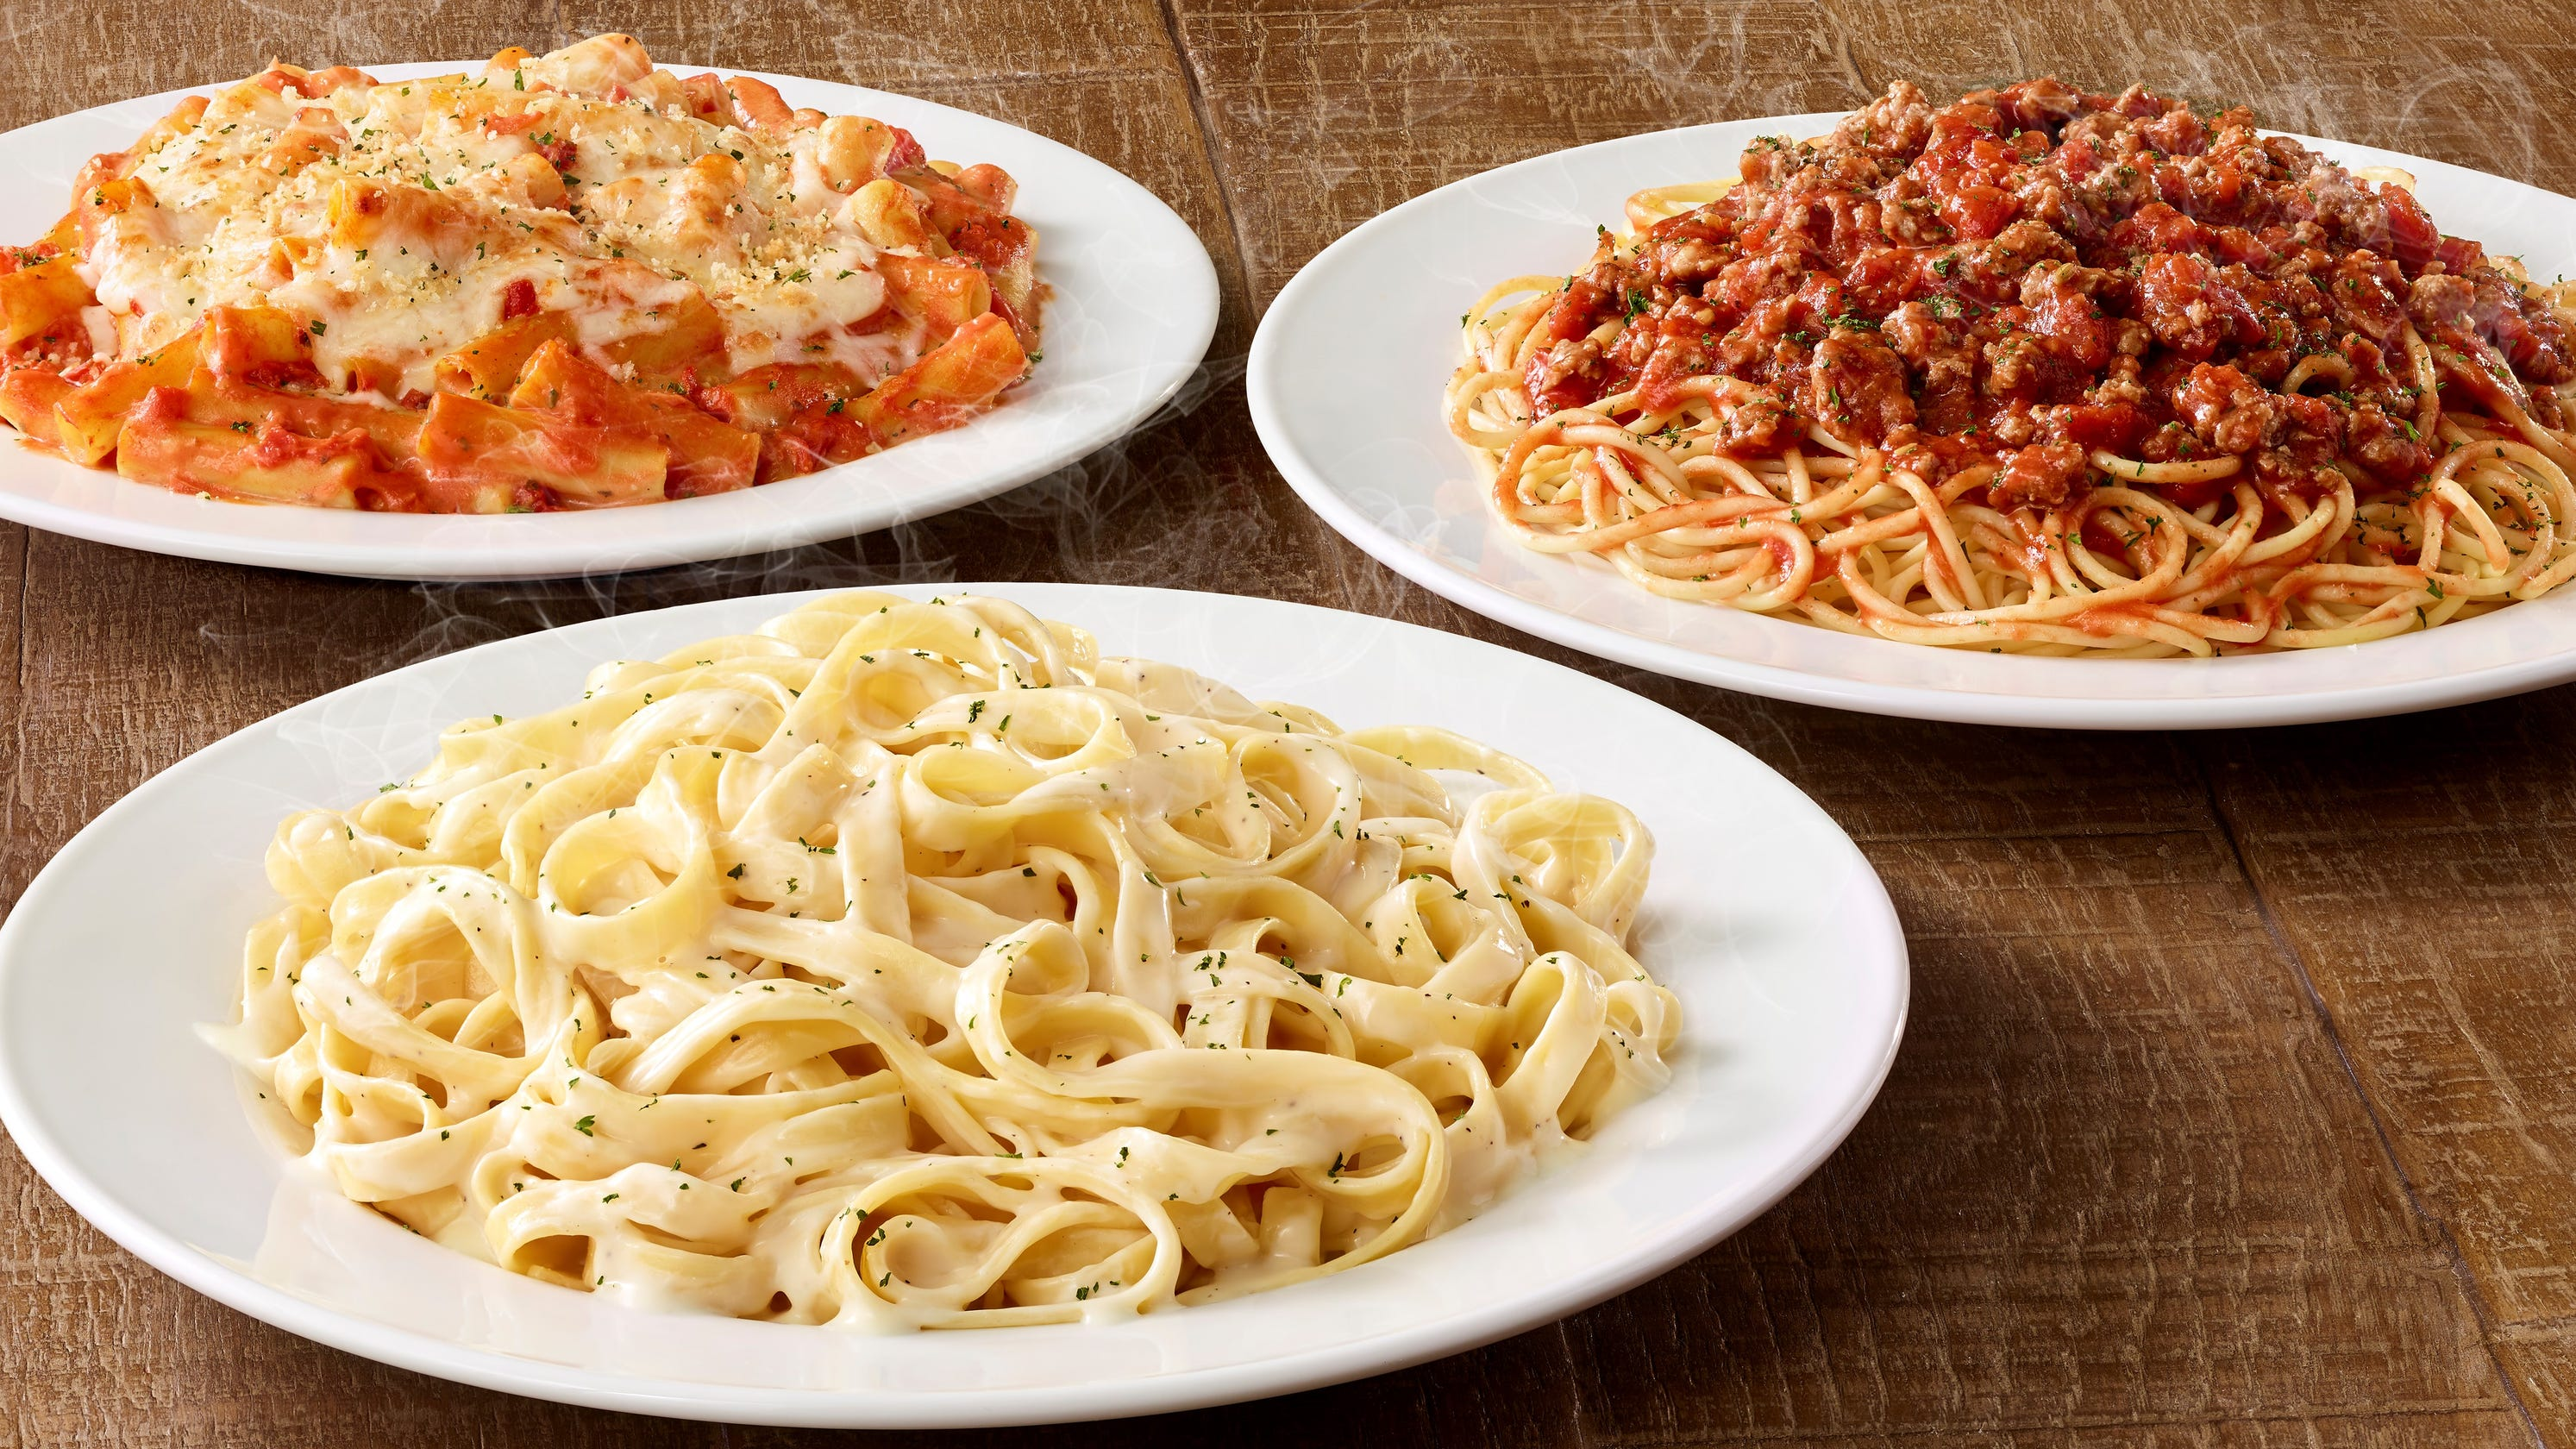 Olive garden 5 take home entrees available in des moines - Does olive garden deliver to your house ...